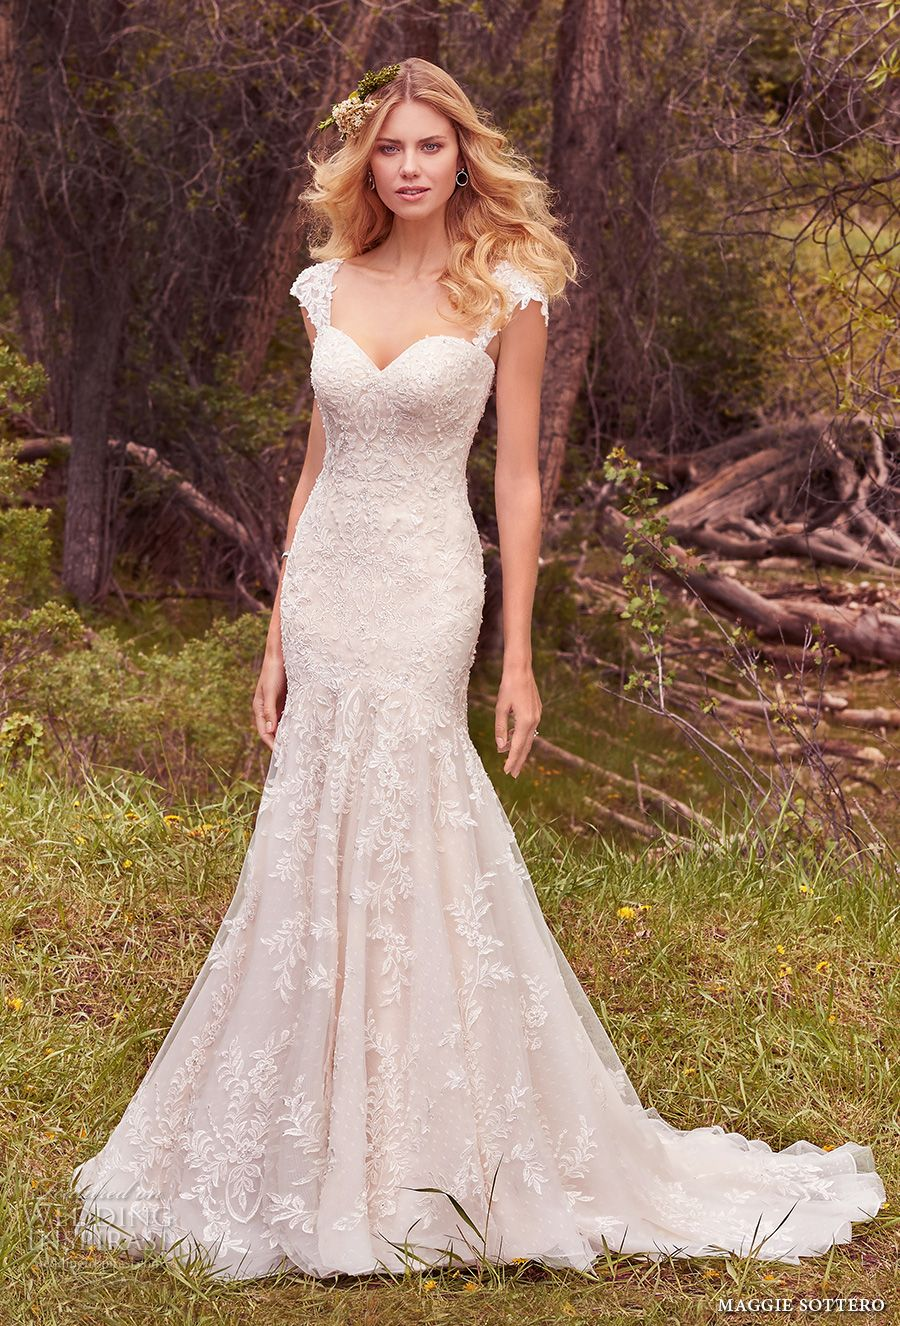 Maggie Sottero Spring 2017 Bridal Detachable Cap Sleeves Sweetheart Neckline Full Embellishment Fit And Flare Wedding Dress Corset Strap Chapel Train